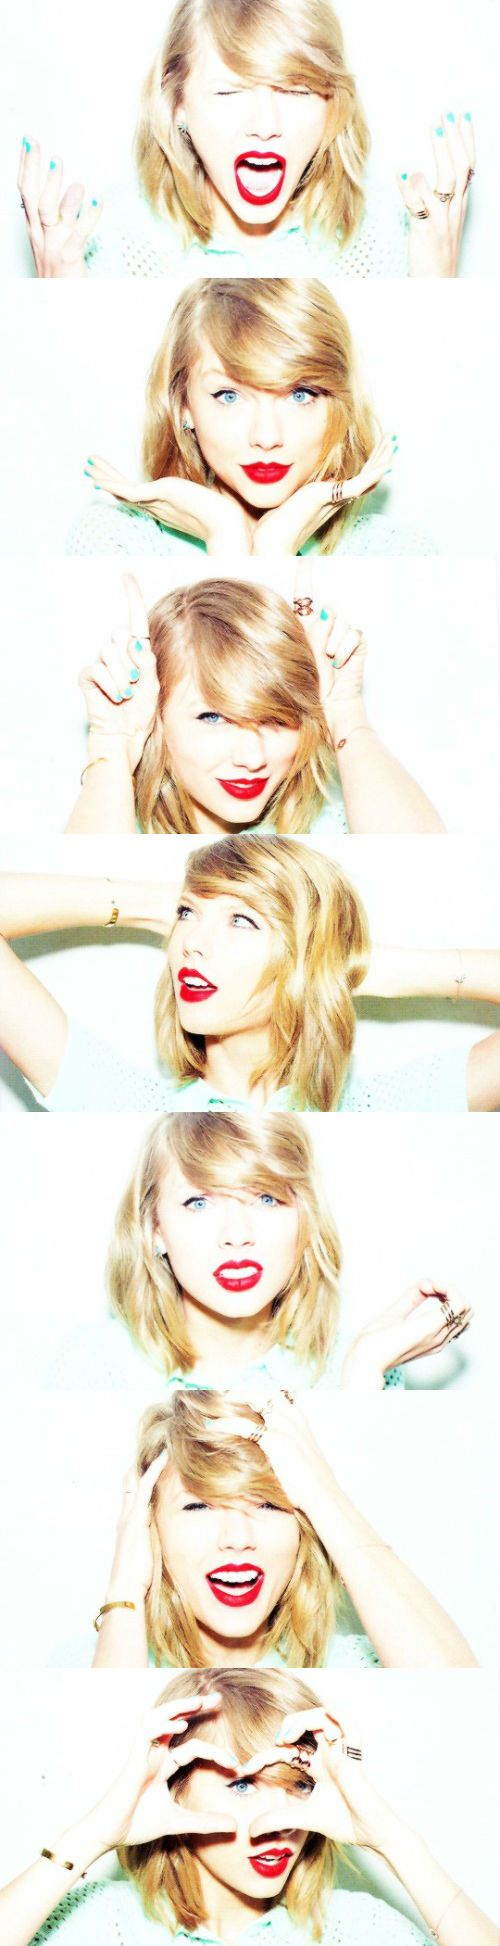 """We see our appearance everyday and we forget those negative thoughts aren't real. We have to try and forget that we aren't terrible people and we need to learn how to love ourselves."" - Taylor Swift <3"